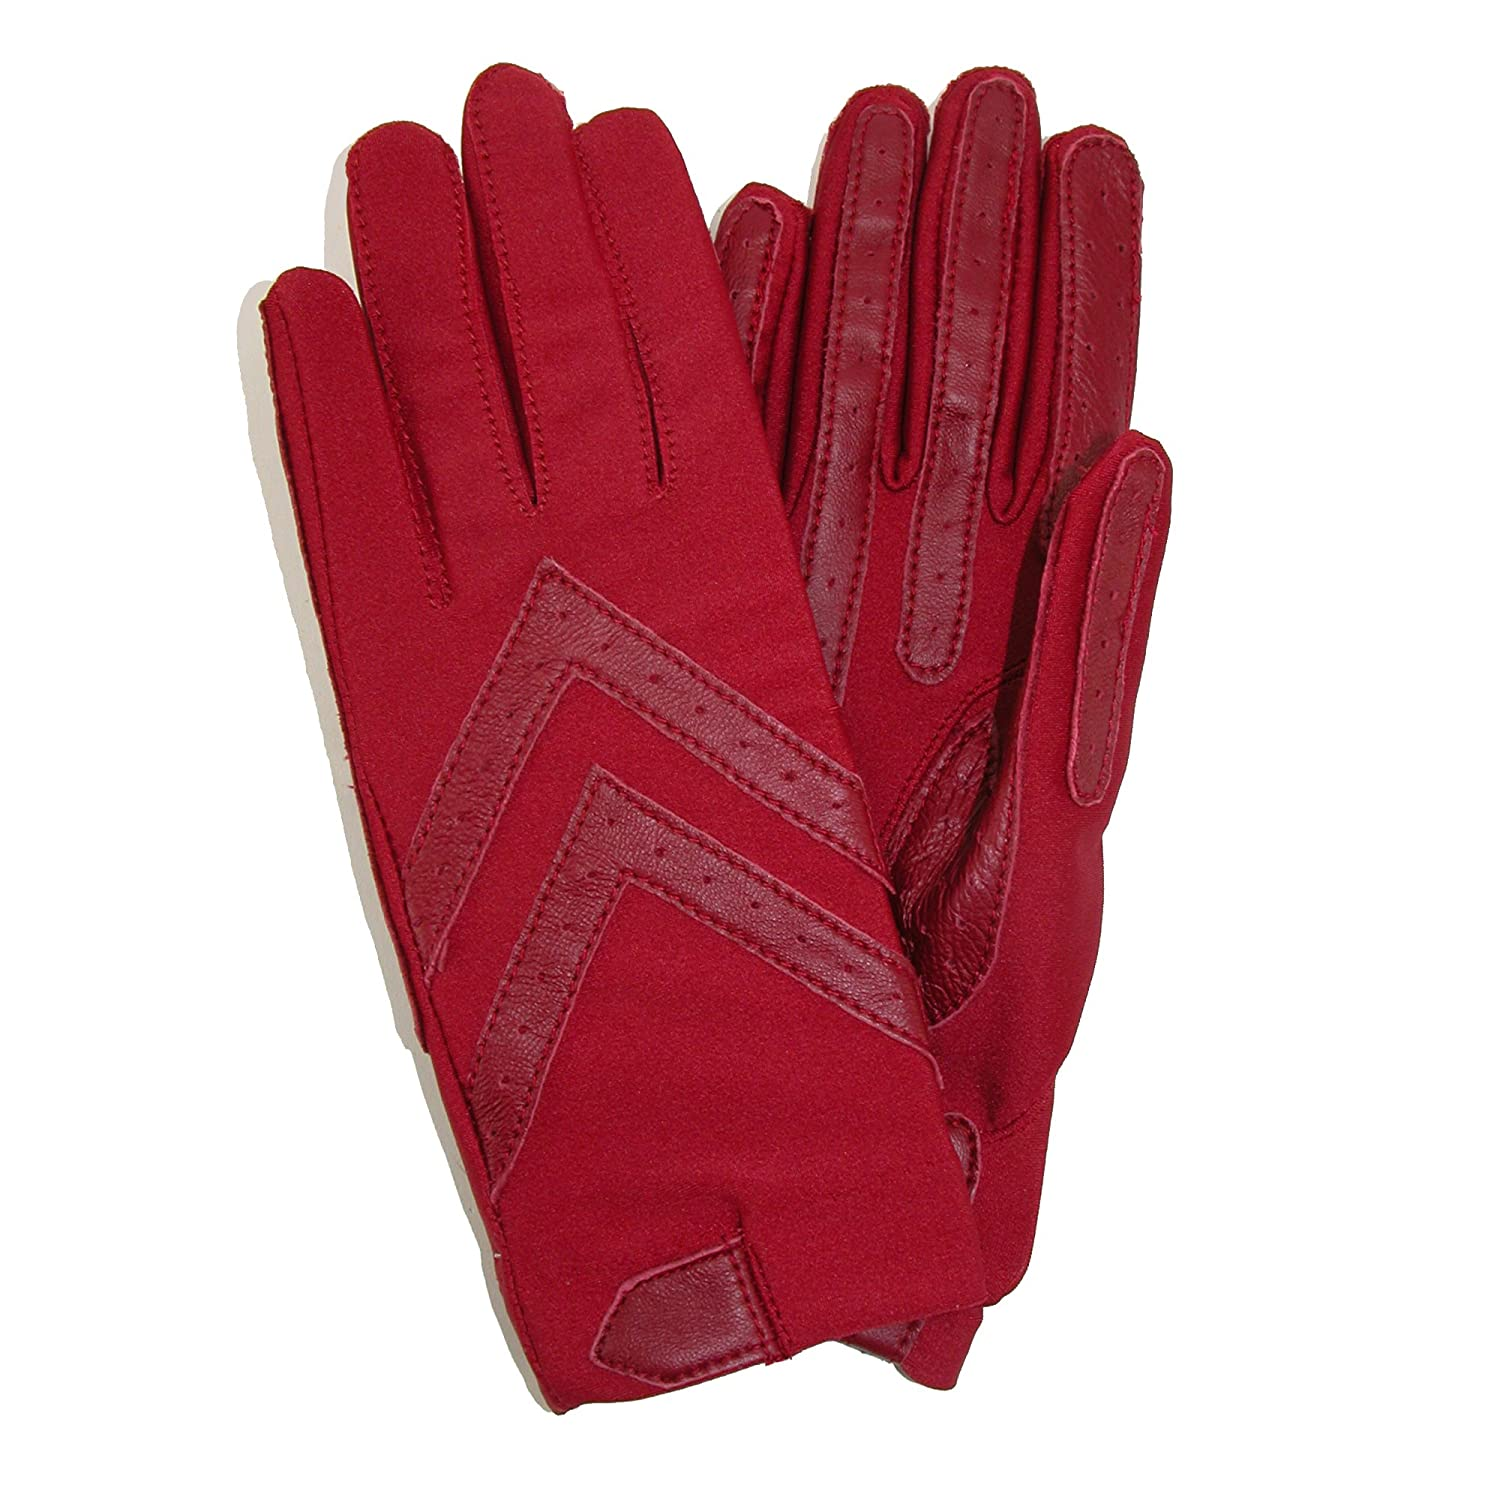 Driving gloves isotoner - Totes Isotoner Womens Unlined Leather Palm Driving Gloves Pack Of 2 At Amazon Women S Clothing Store Cold Weather Gloves